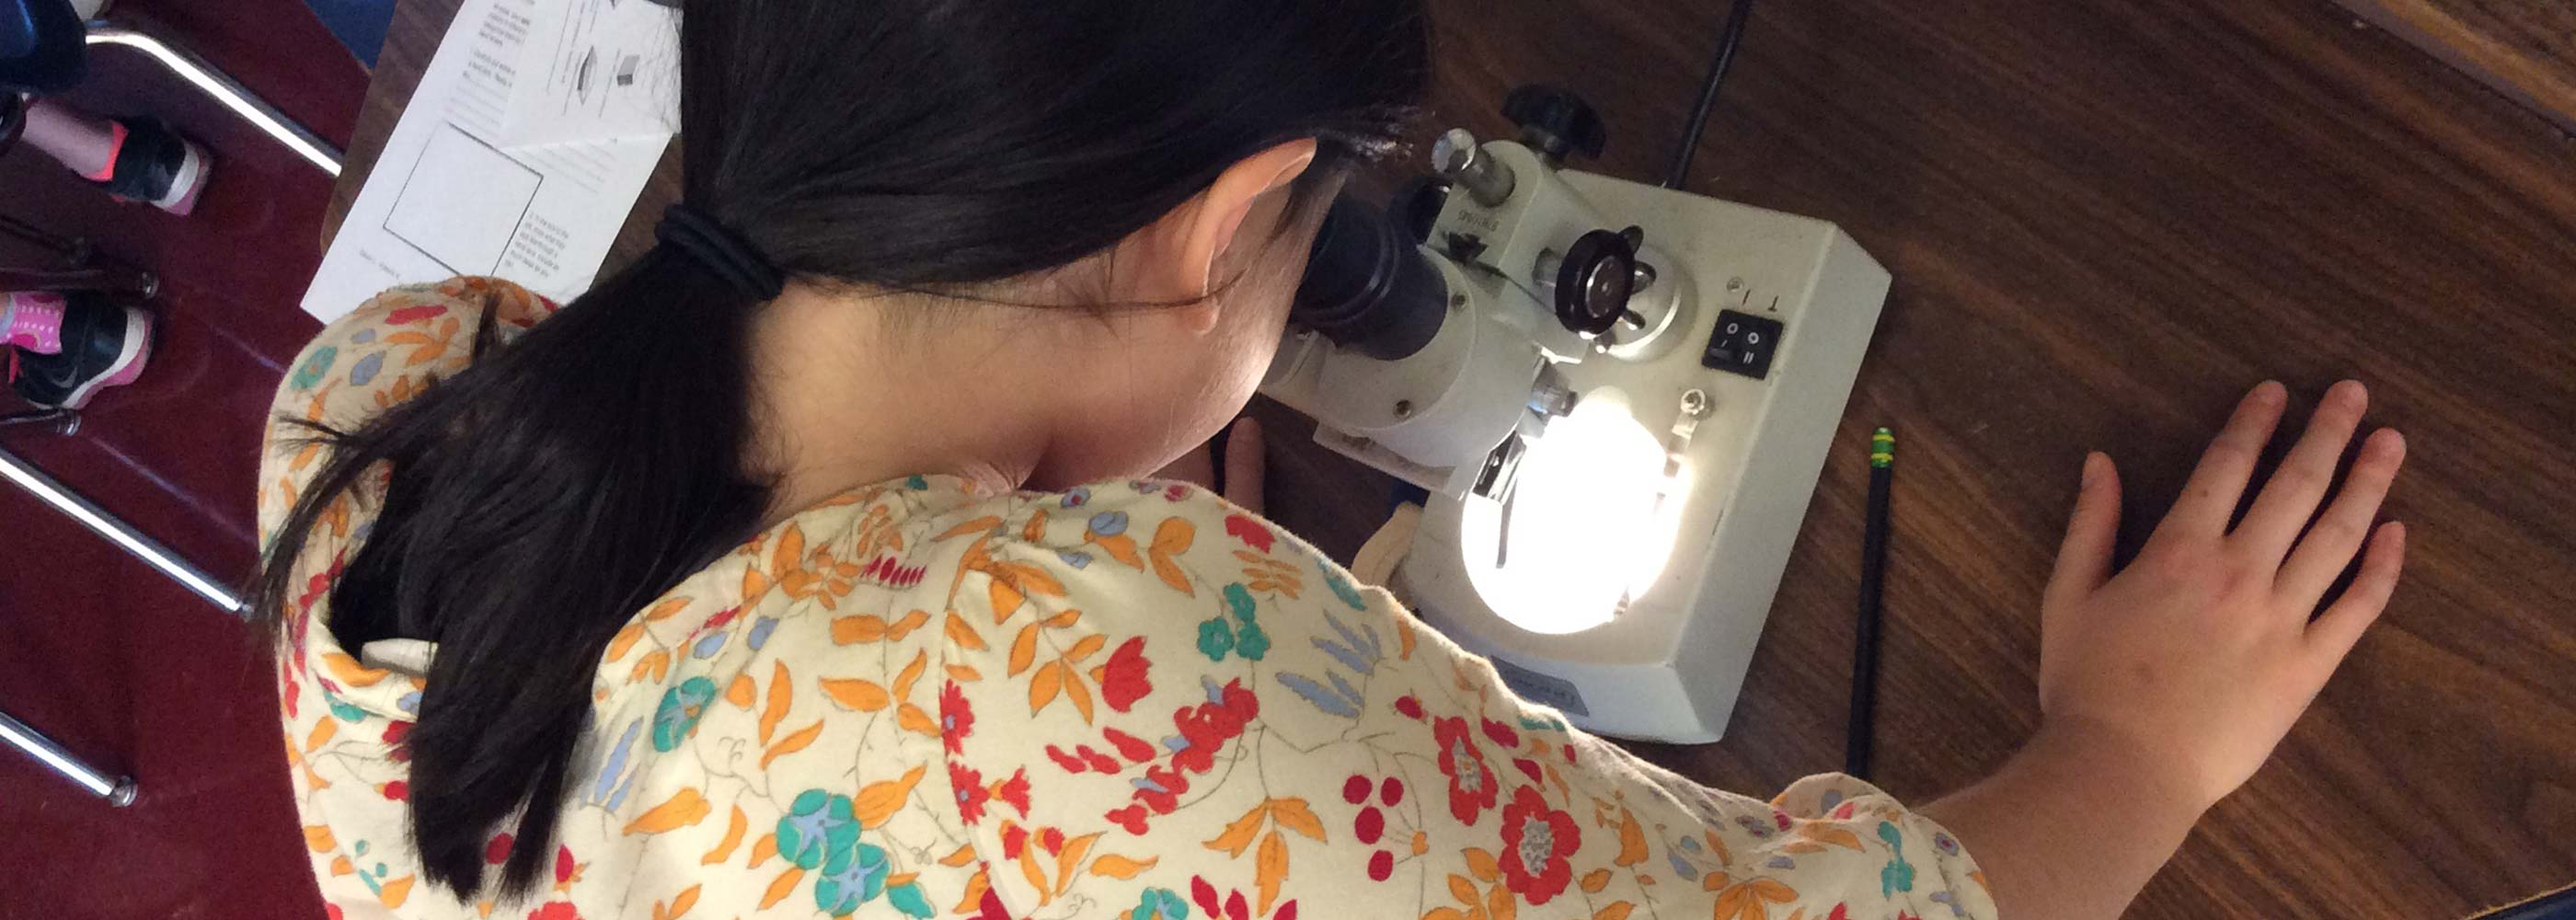 A student peers into a microscope